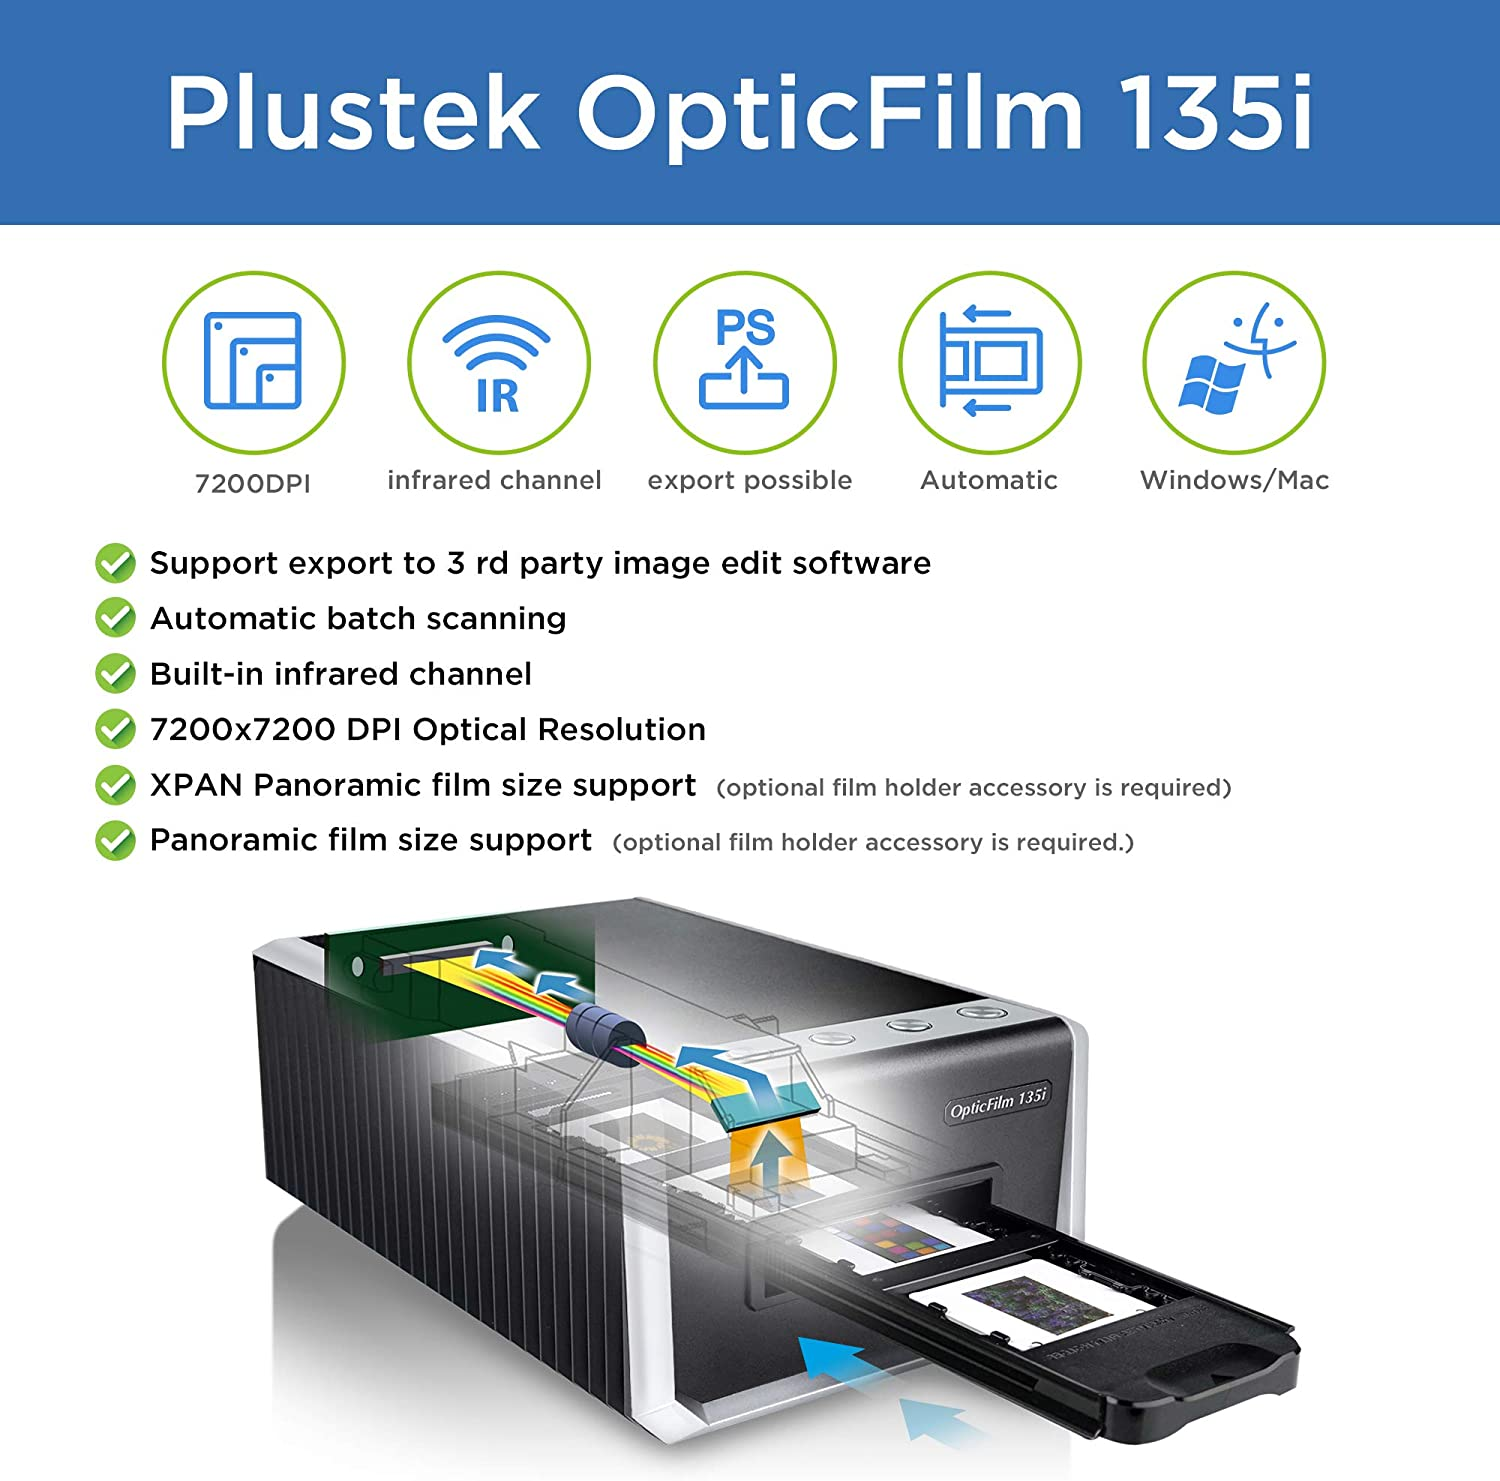 Plustek OpticFilm 135i - Automatic Film & Slide Scanner, Batch converts 35mm Slides & Film Negatives, Support 3rd Party Editing Software Export with 7200 dpi Resolution and Infrared Dust/Scratch Remo: Electronics